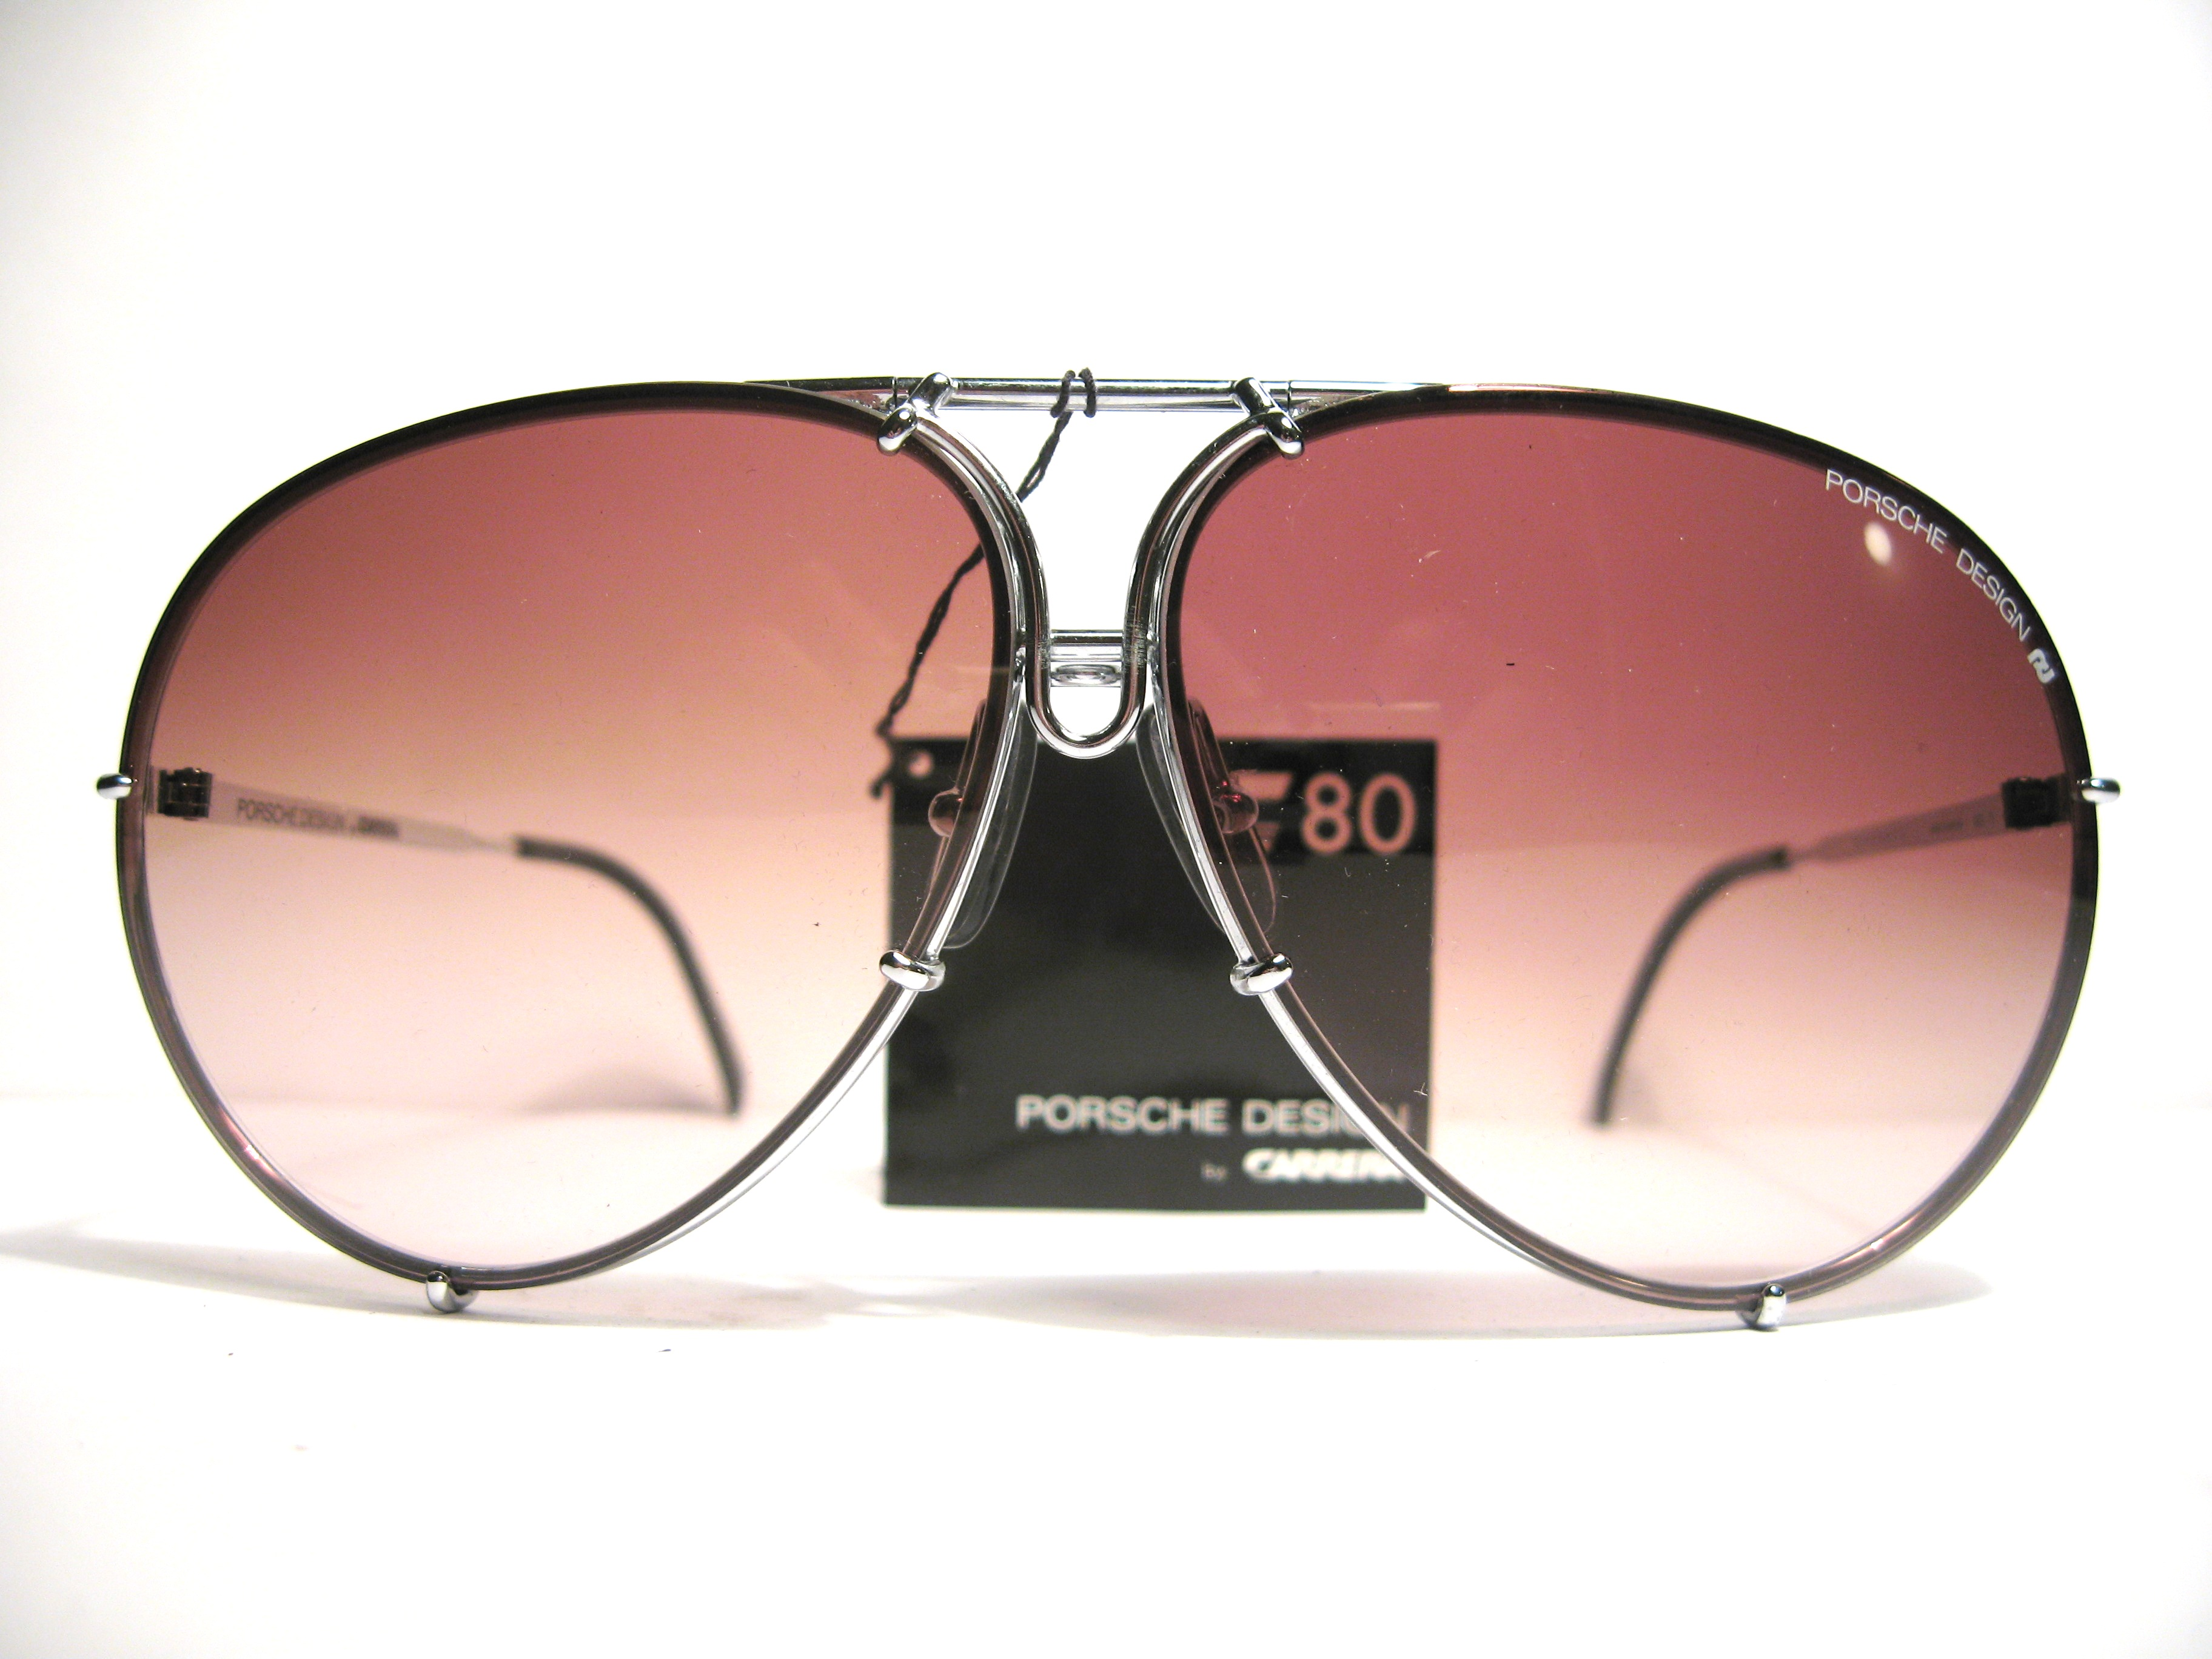 Porsche Carrera Sunglasses 5621 Porsche Design by Carrera 5621